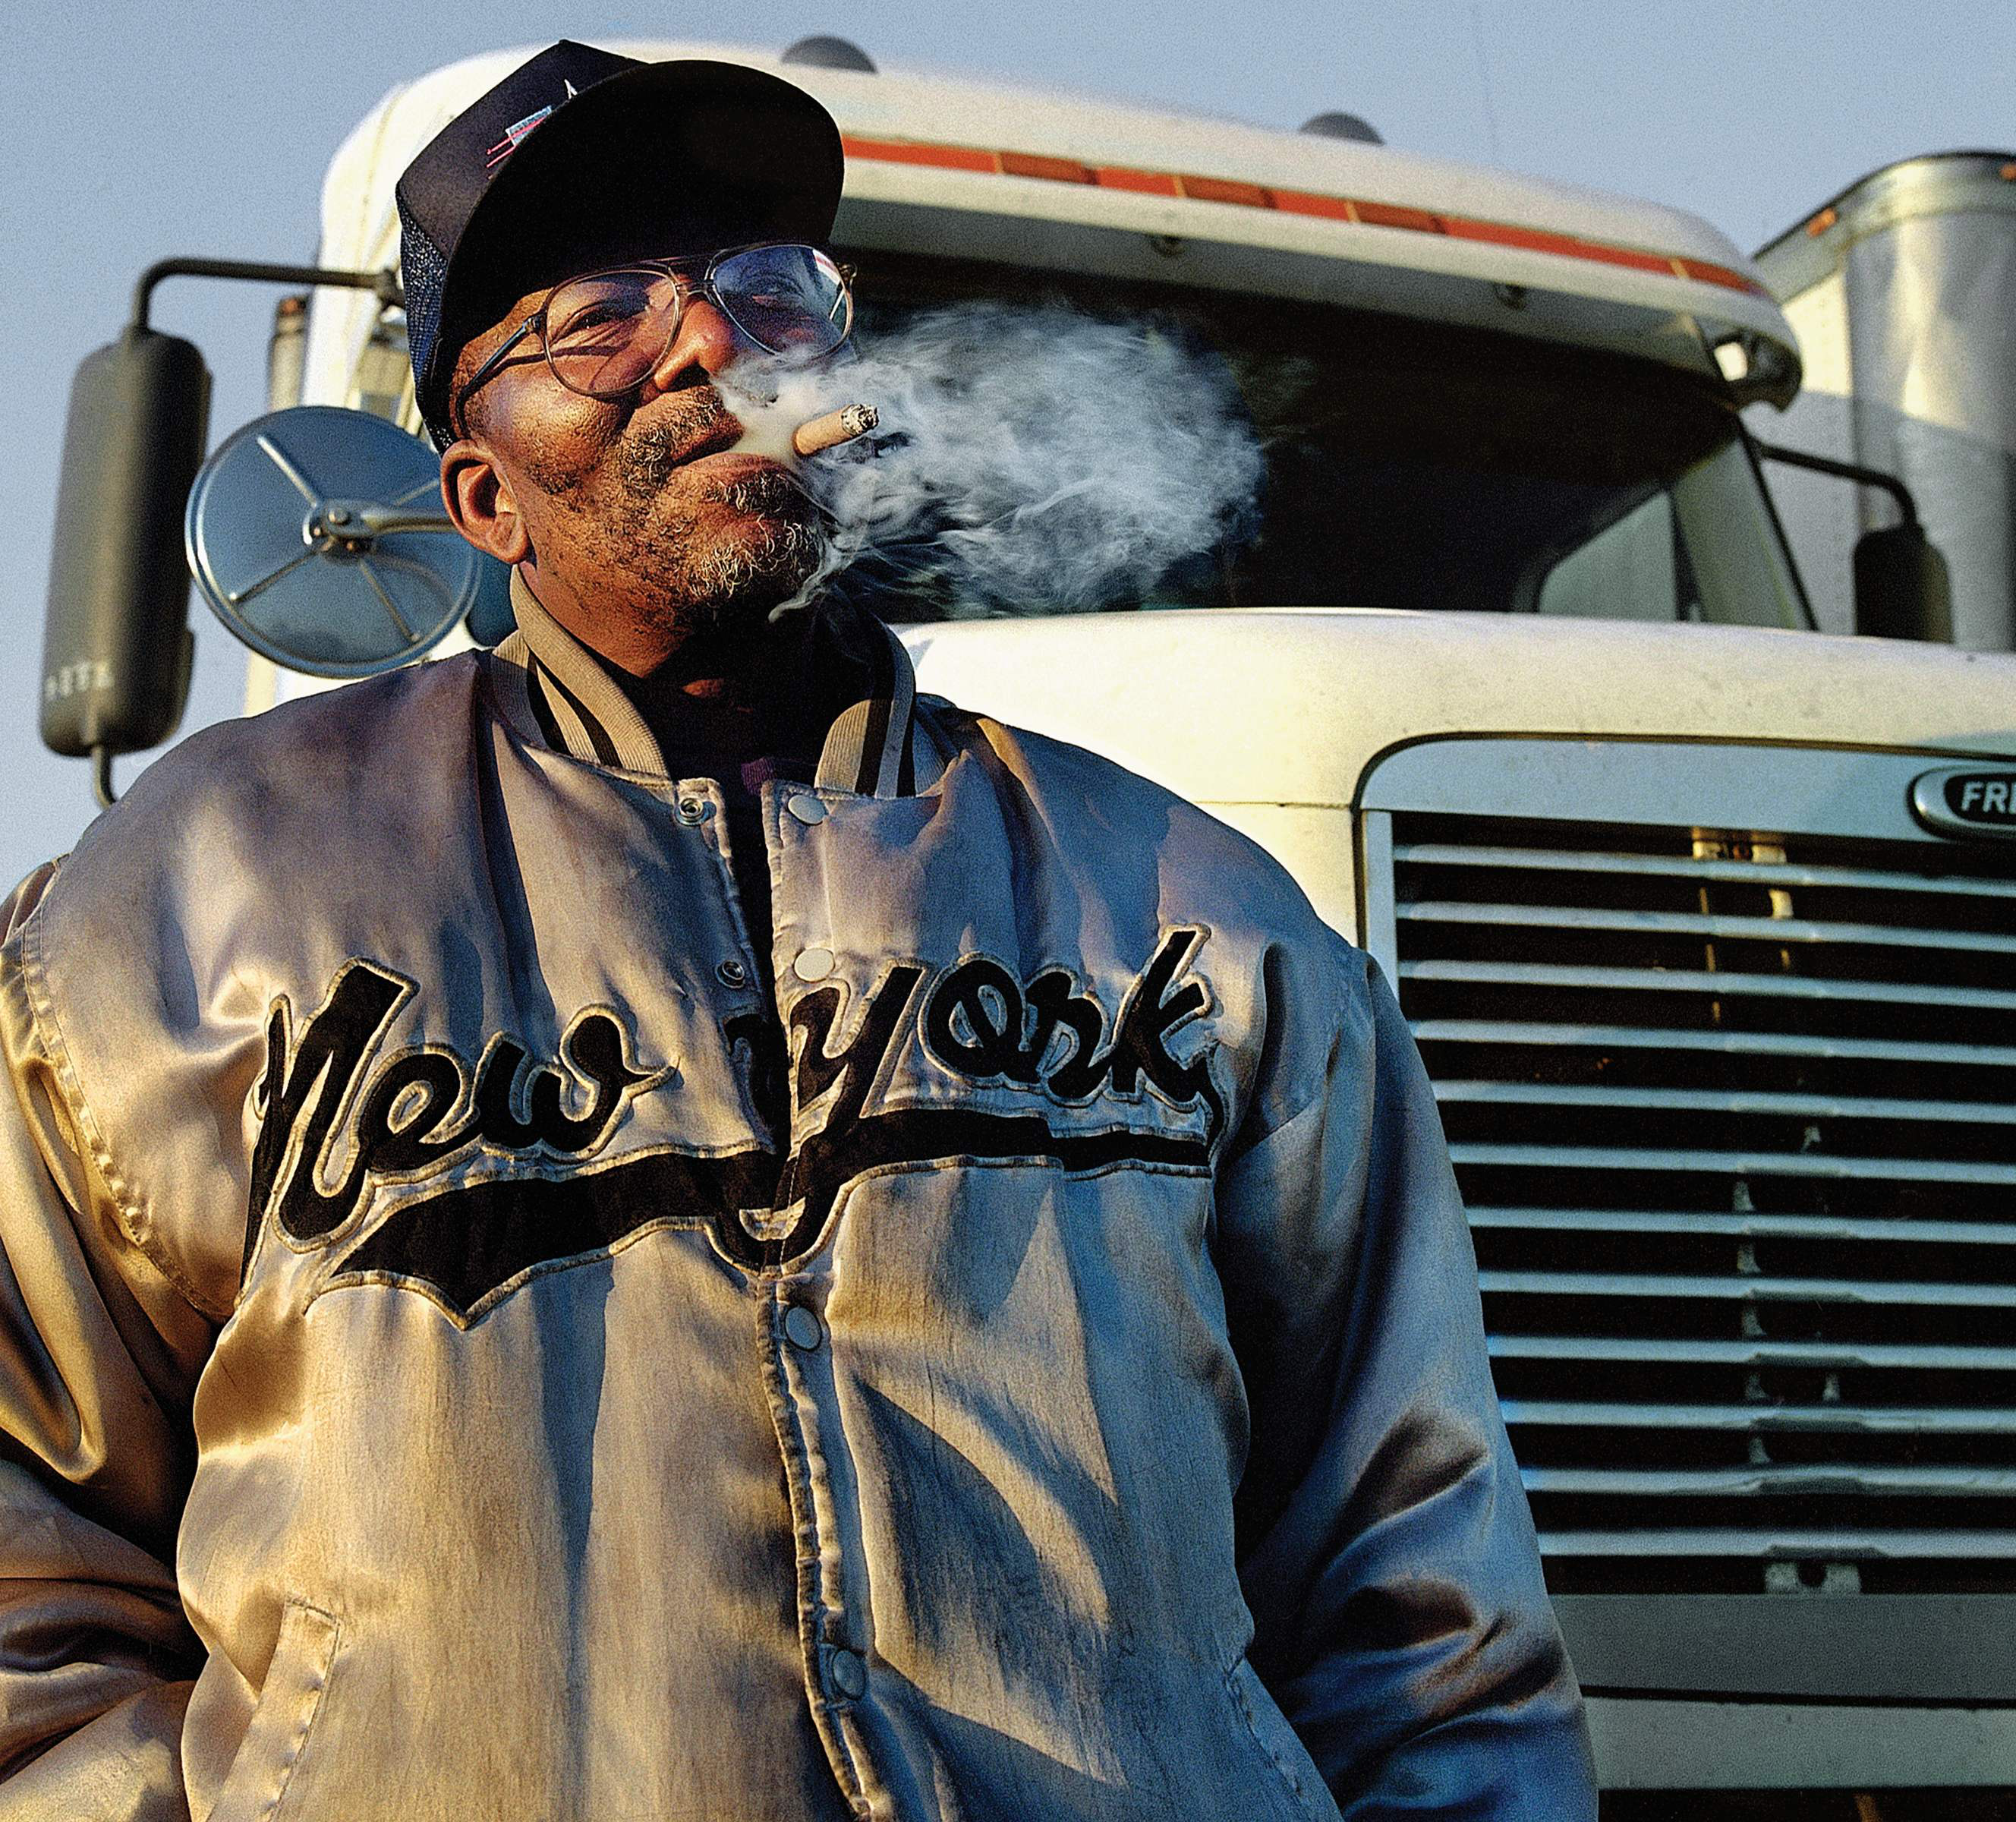 A rare glimpse into the trucking lifestyle